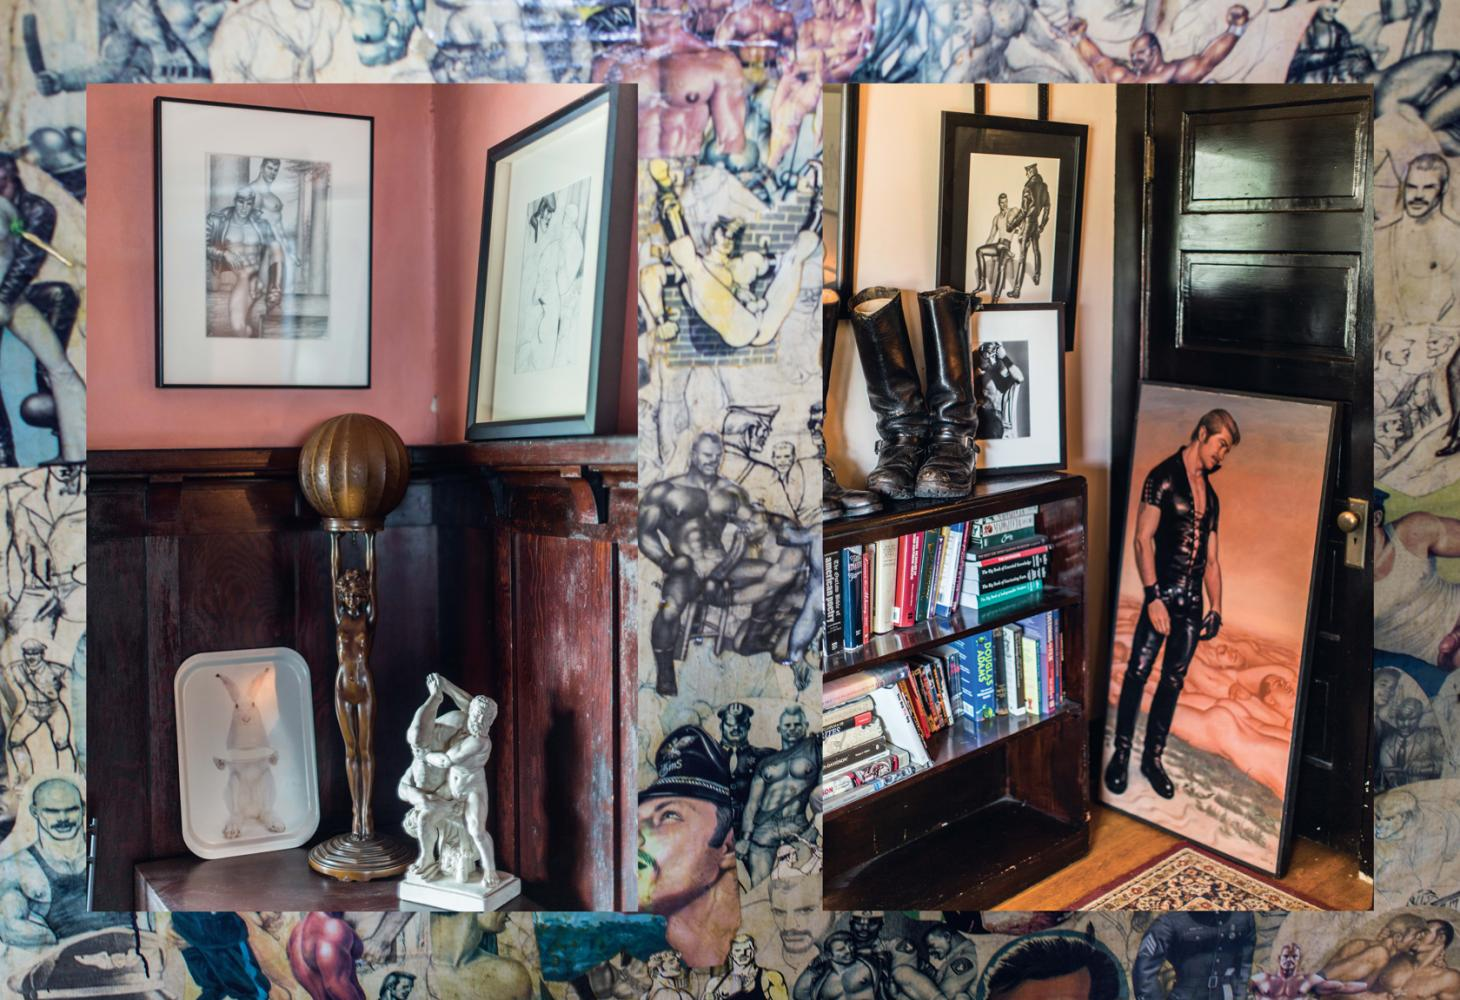 Inside the temple to Tom of Finland in LA